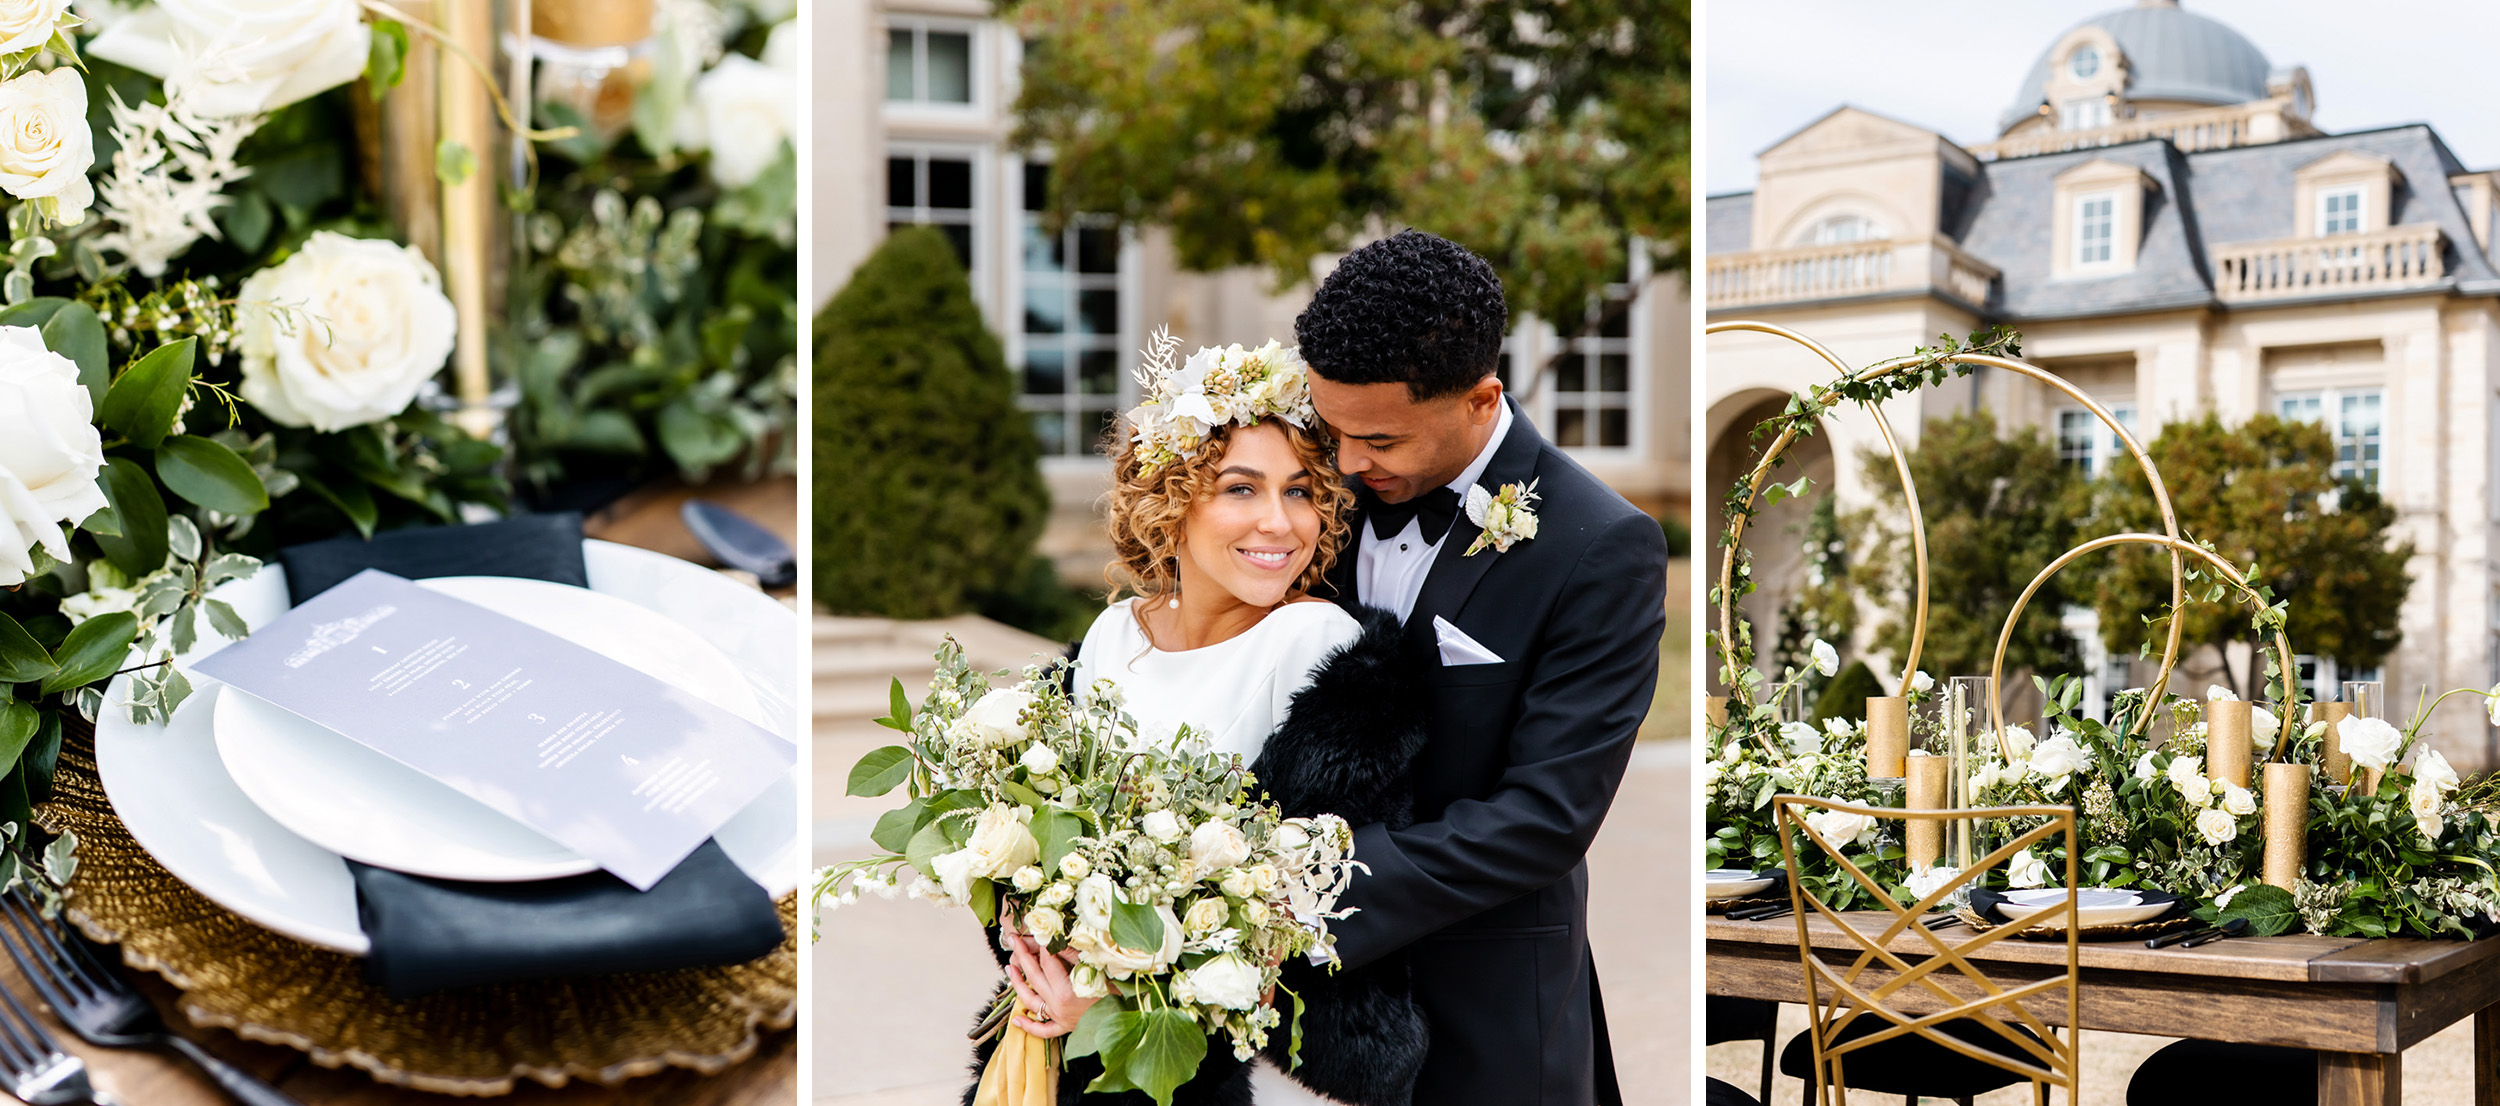 black and white classic wedding